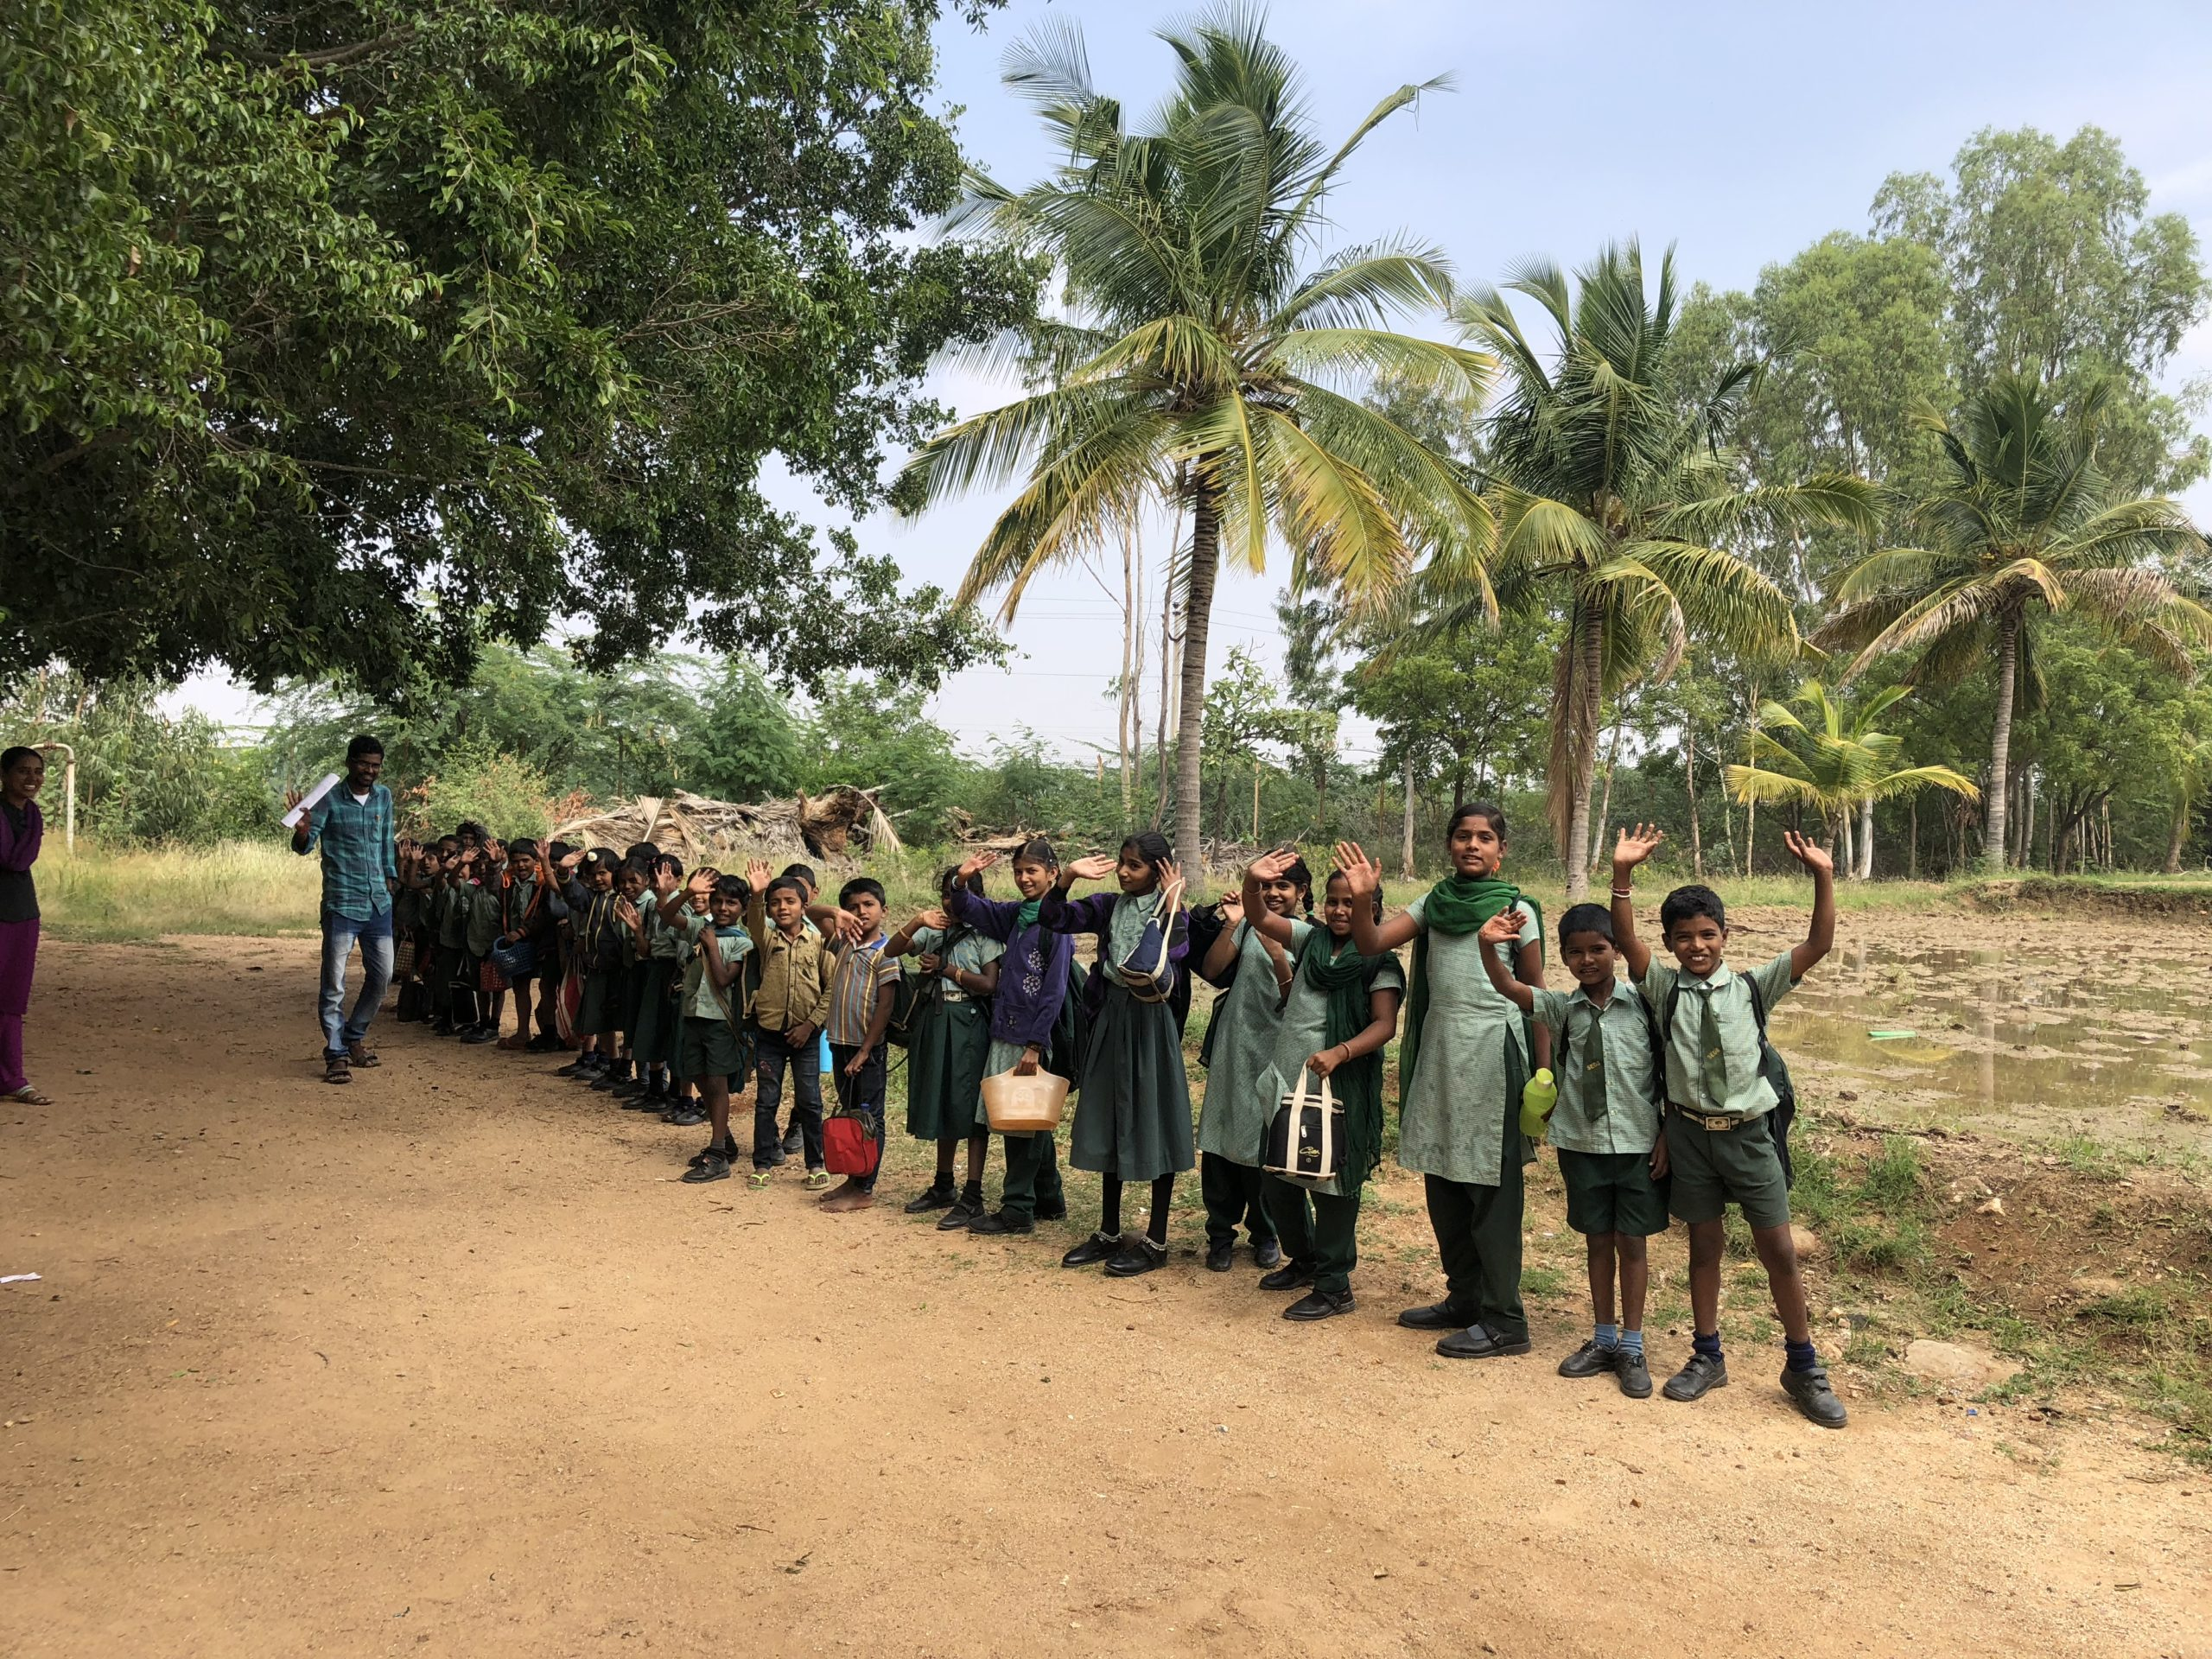 India – week 7: Gaining Perspective and Saying Goodbye